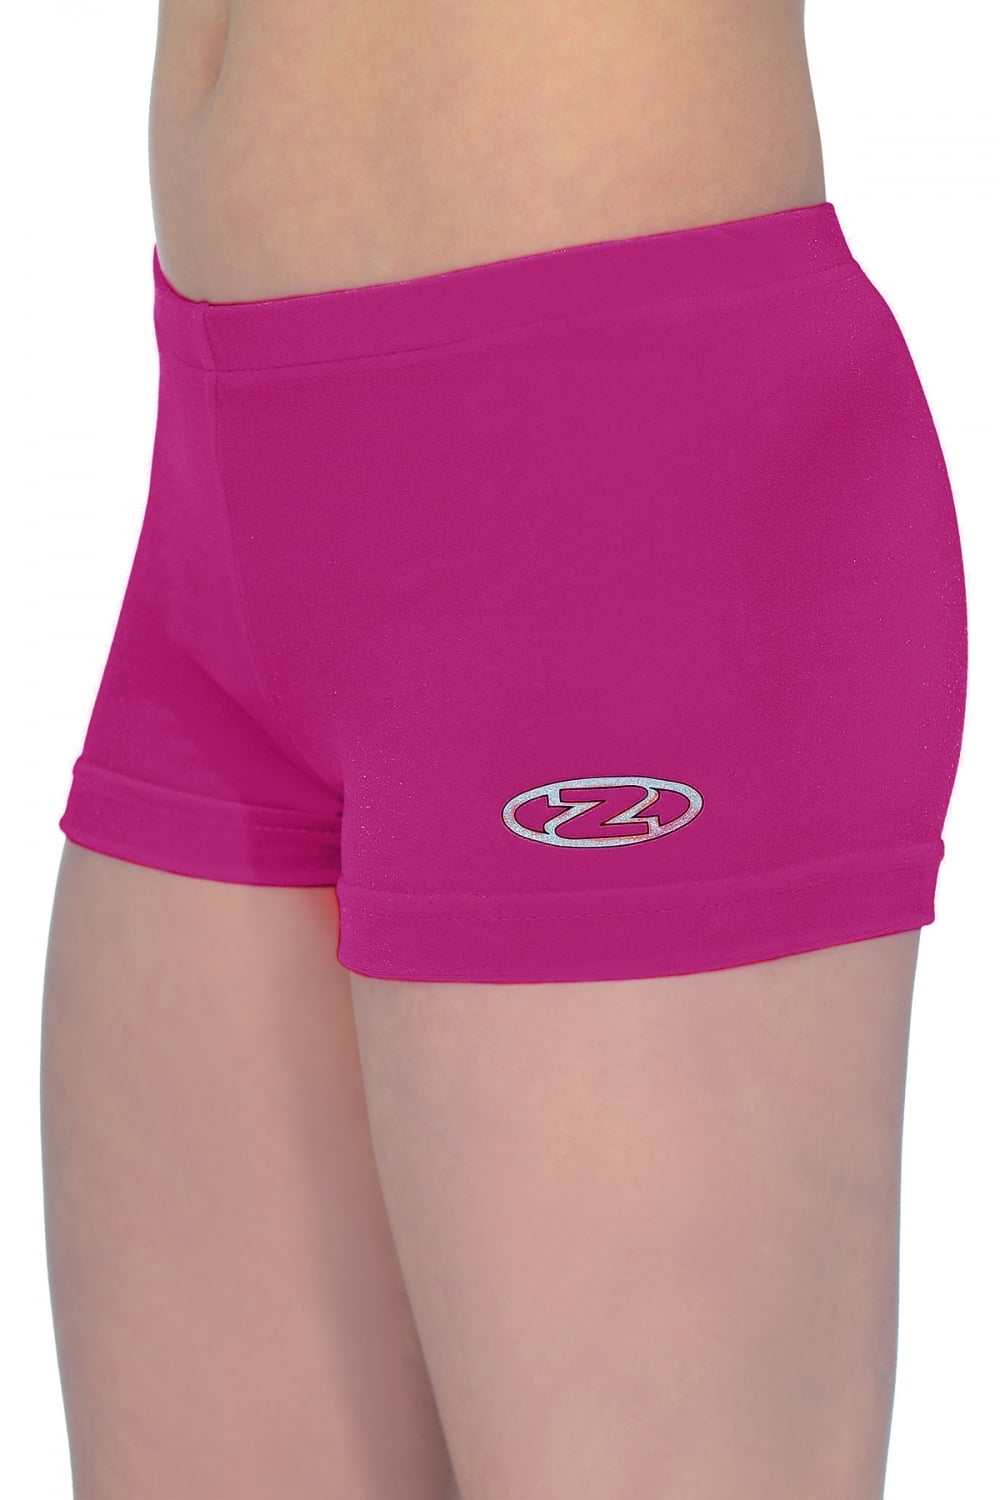 The Zone Smooth Velour Hipster Shorts Z2000